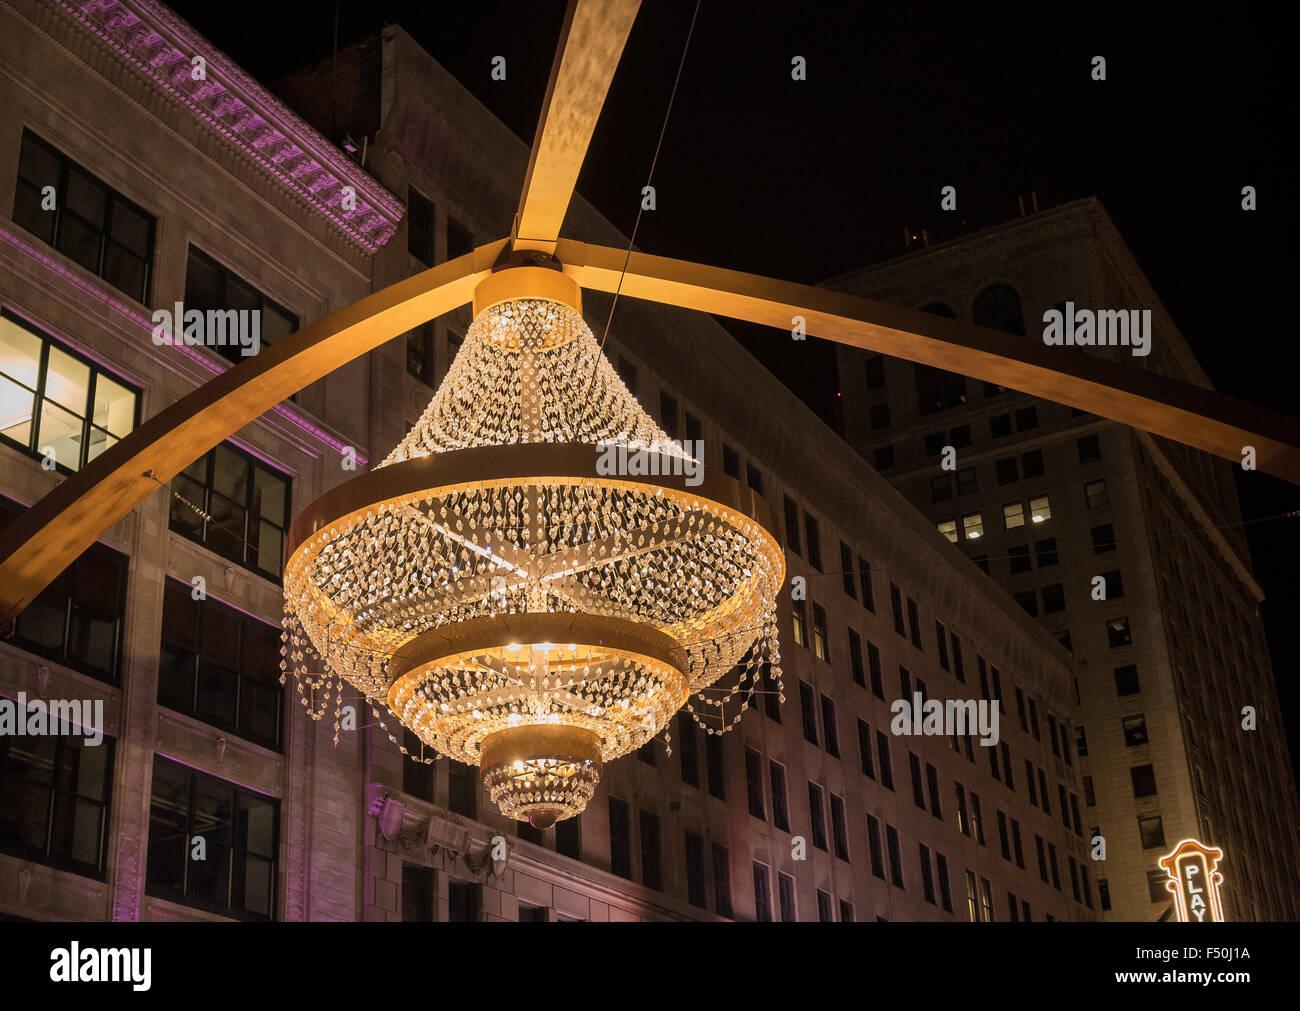 The giant Playhouse Square chandelier in downtown Cleveland, Ohio ...